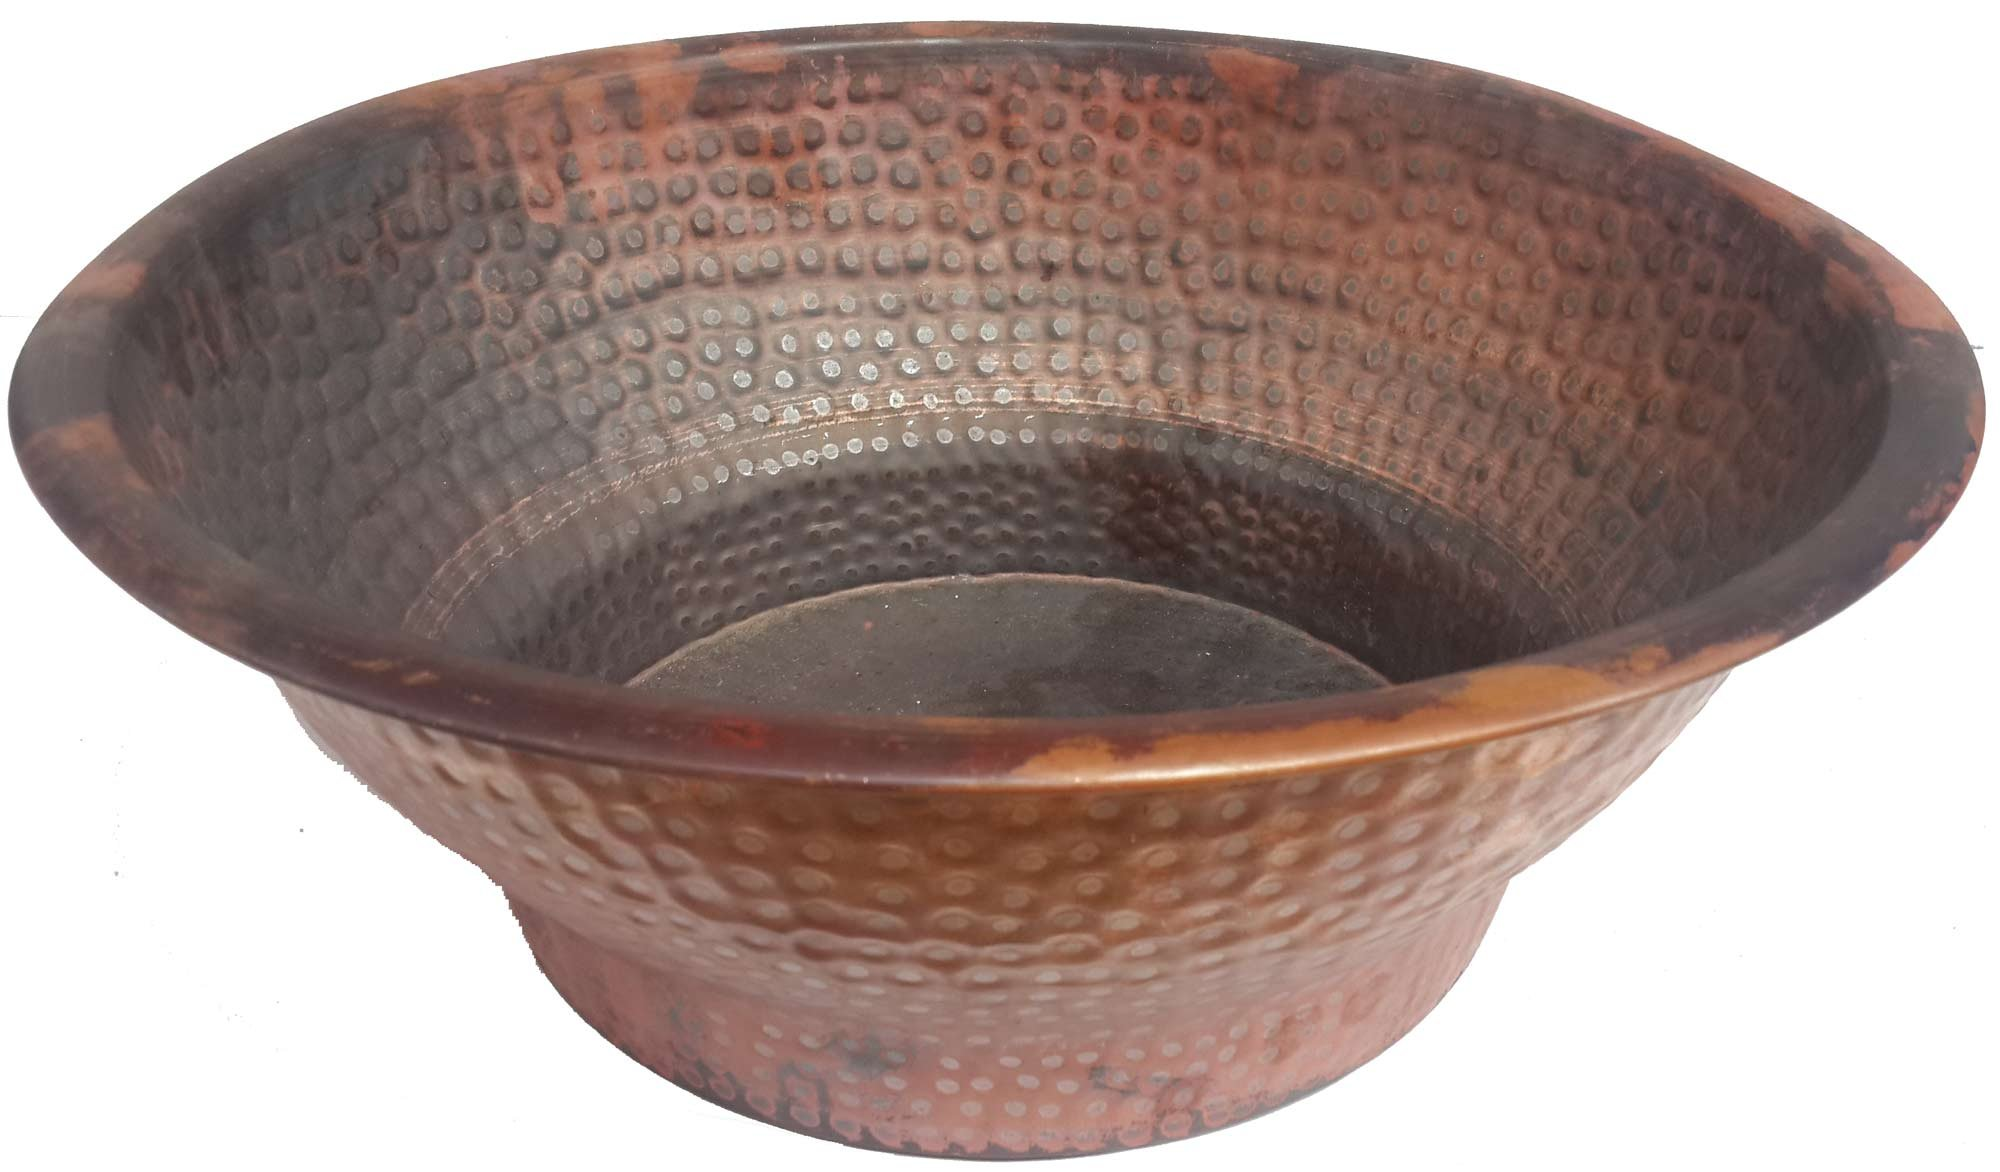 Egypt gift shops Fire Burnt Deep Copper Pedicure Foot Massage Therapy Spa Bowl